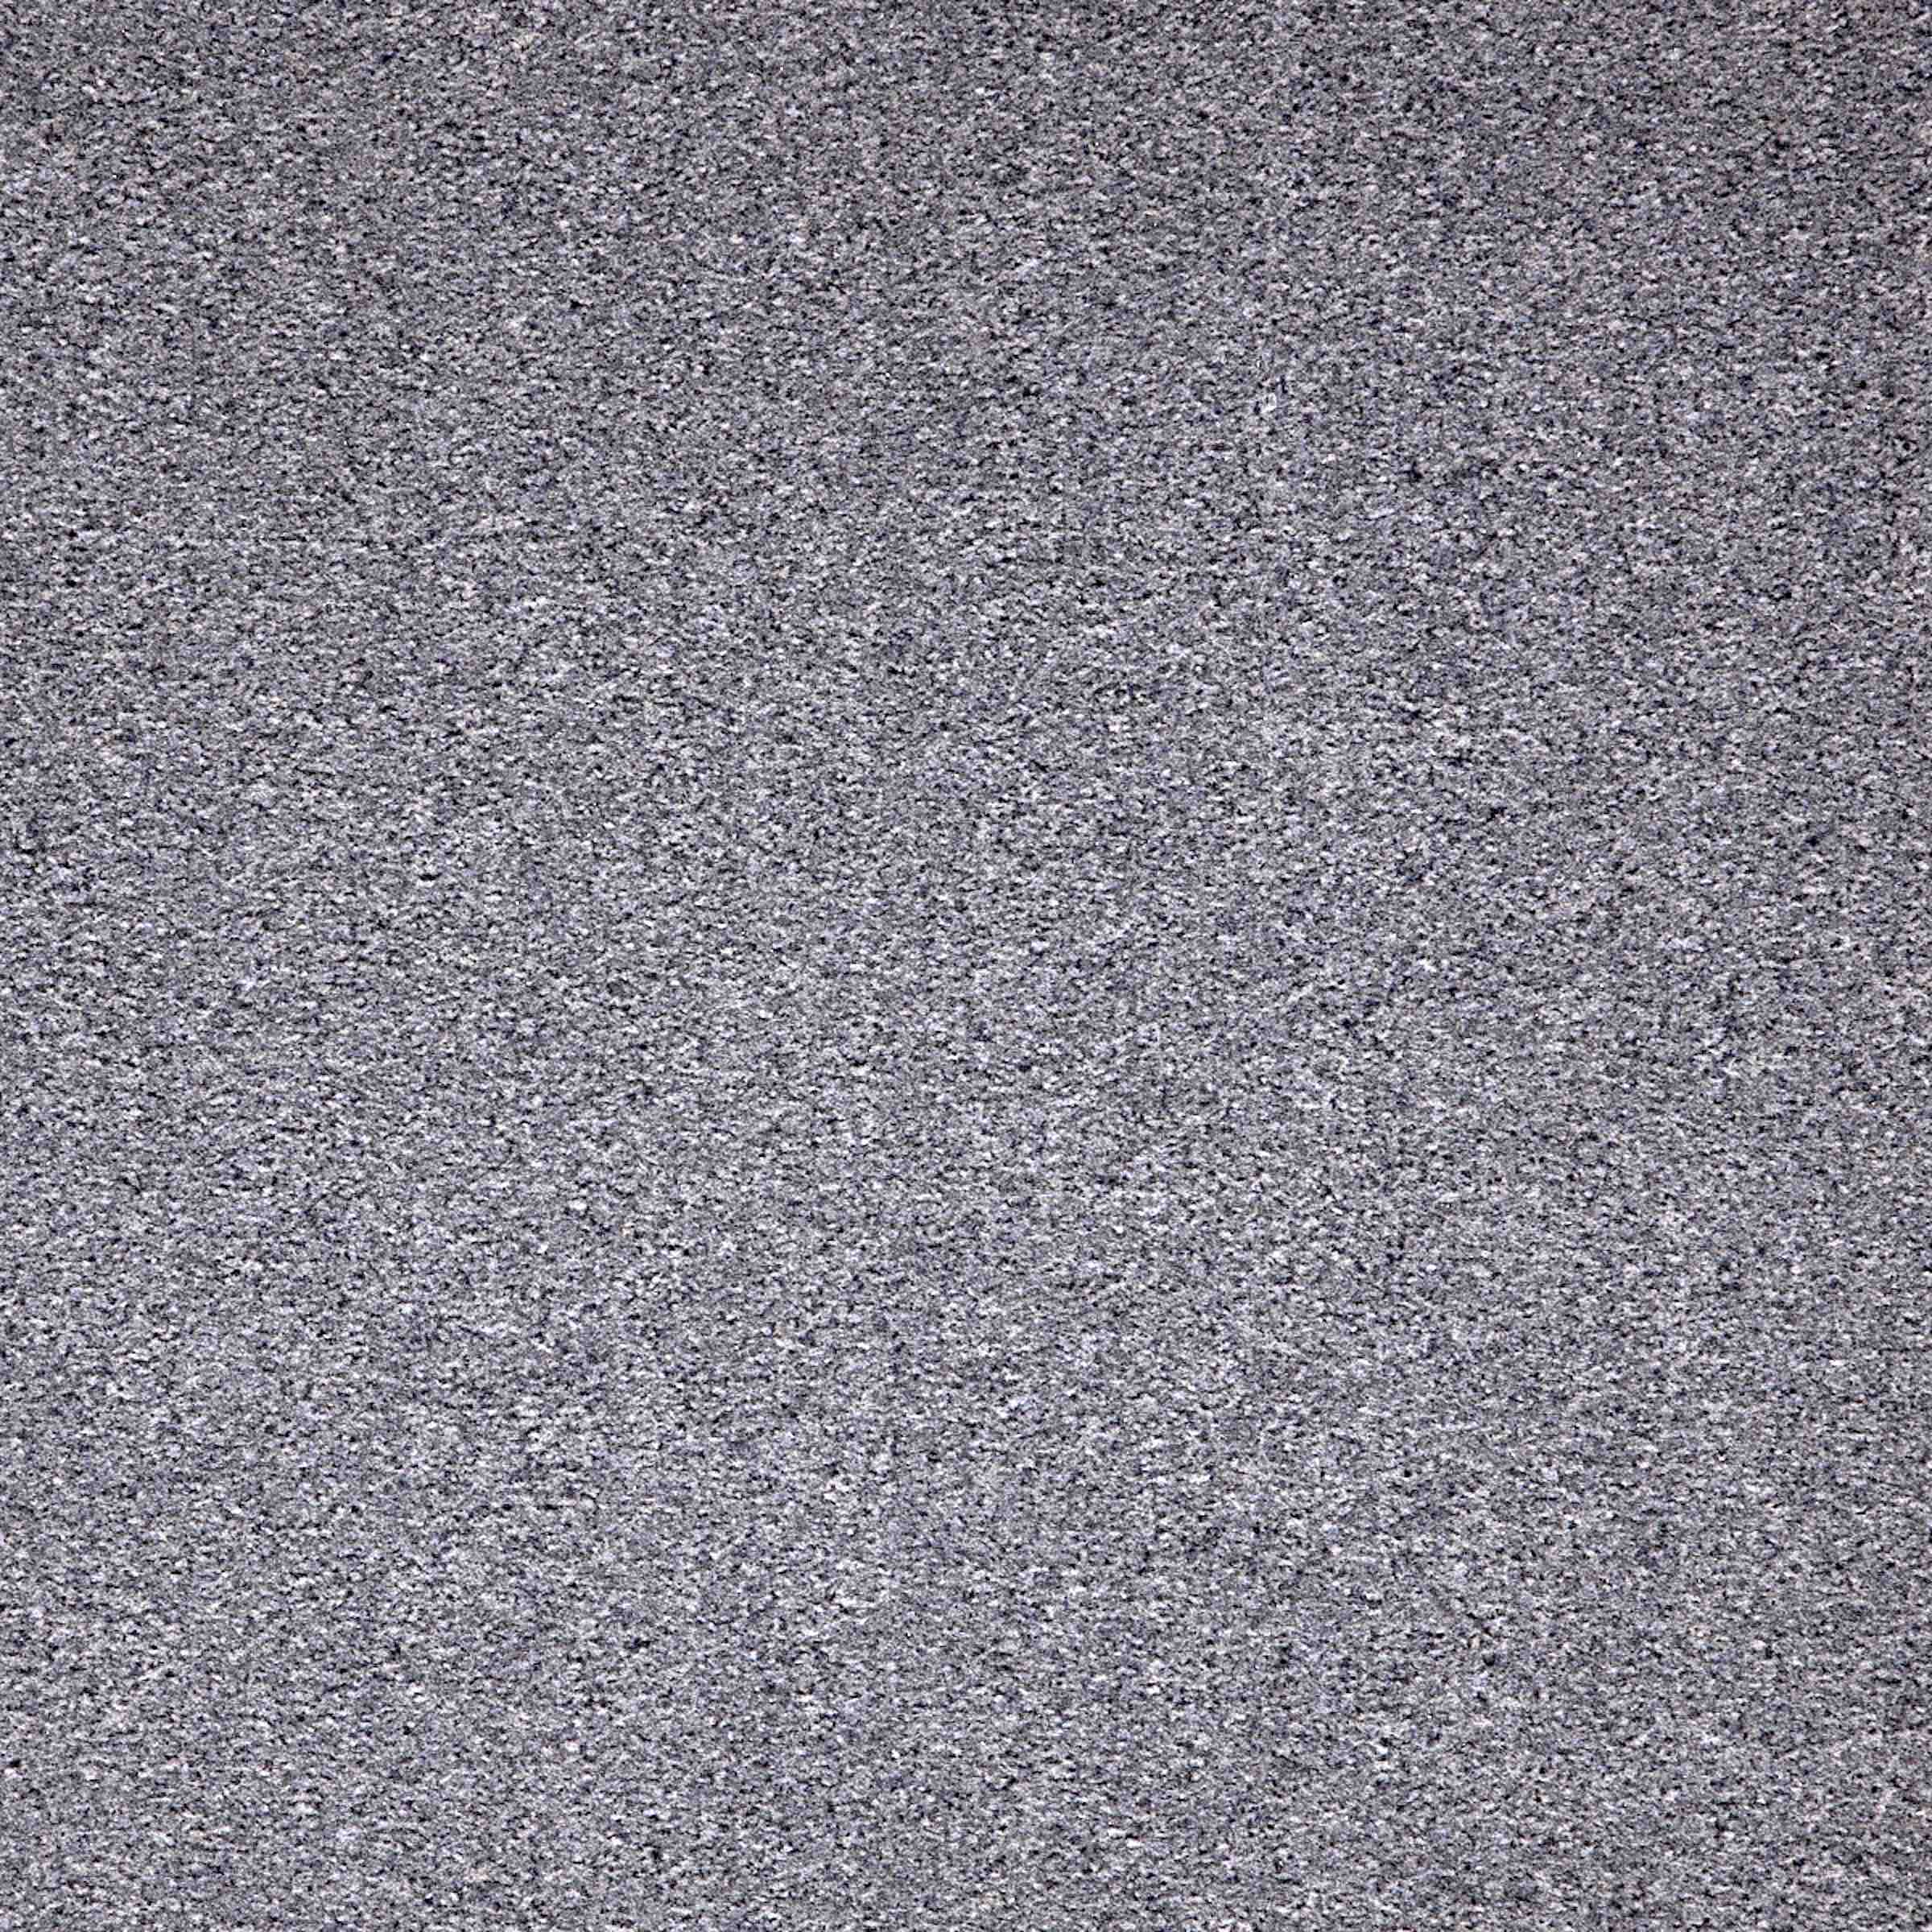 Workspace Cut Pile | Steel Grey, 8031C | Paragon Carpet Tiles | Commercial Carpet Tiles